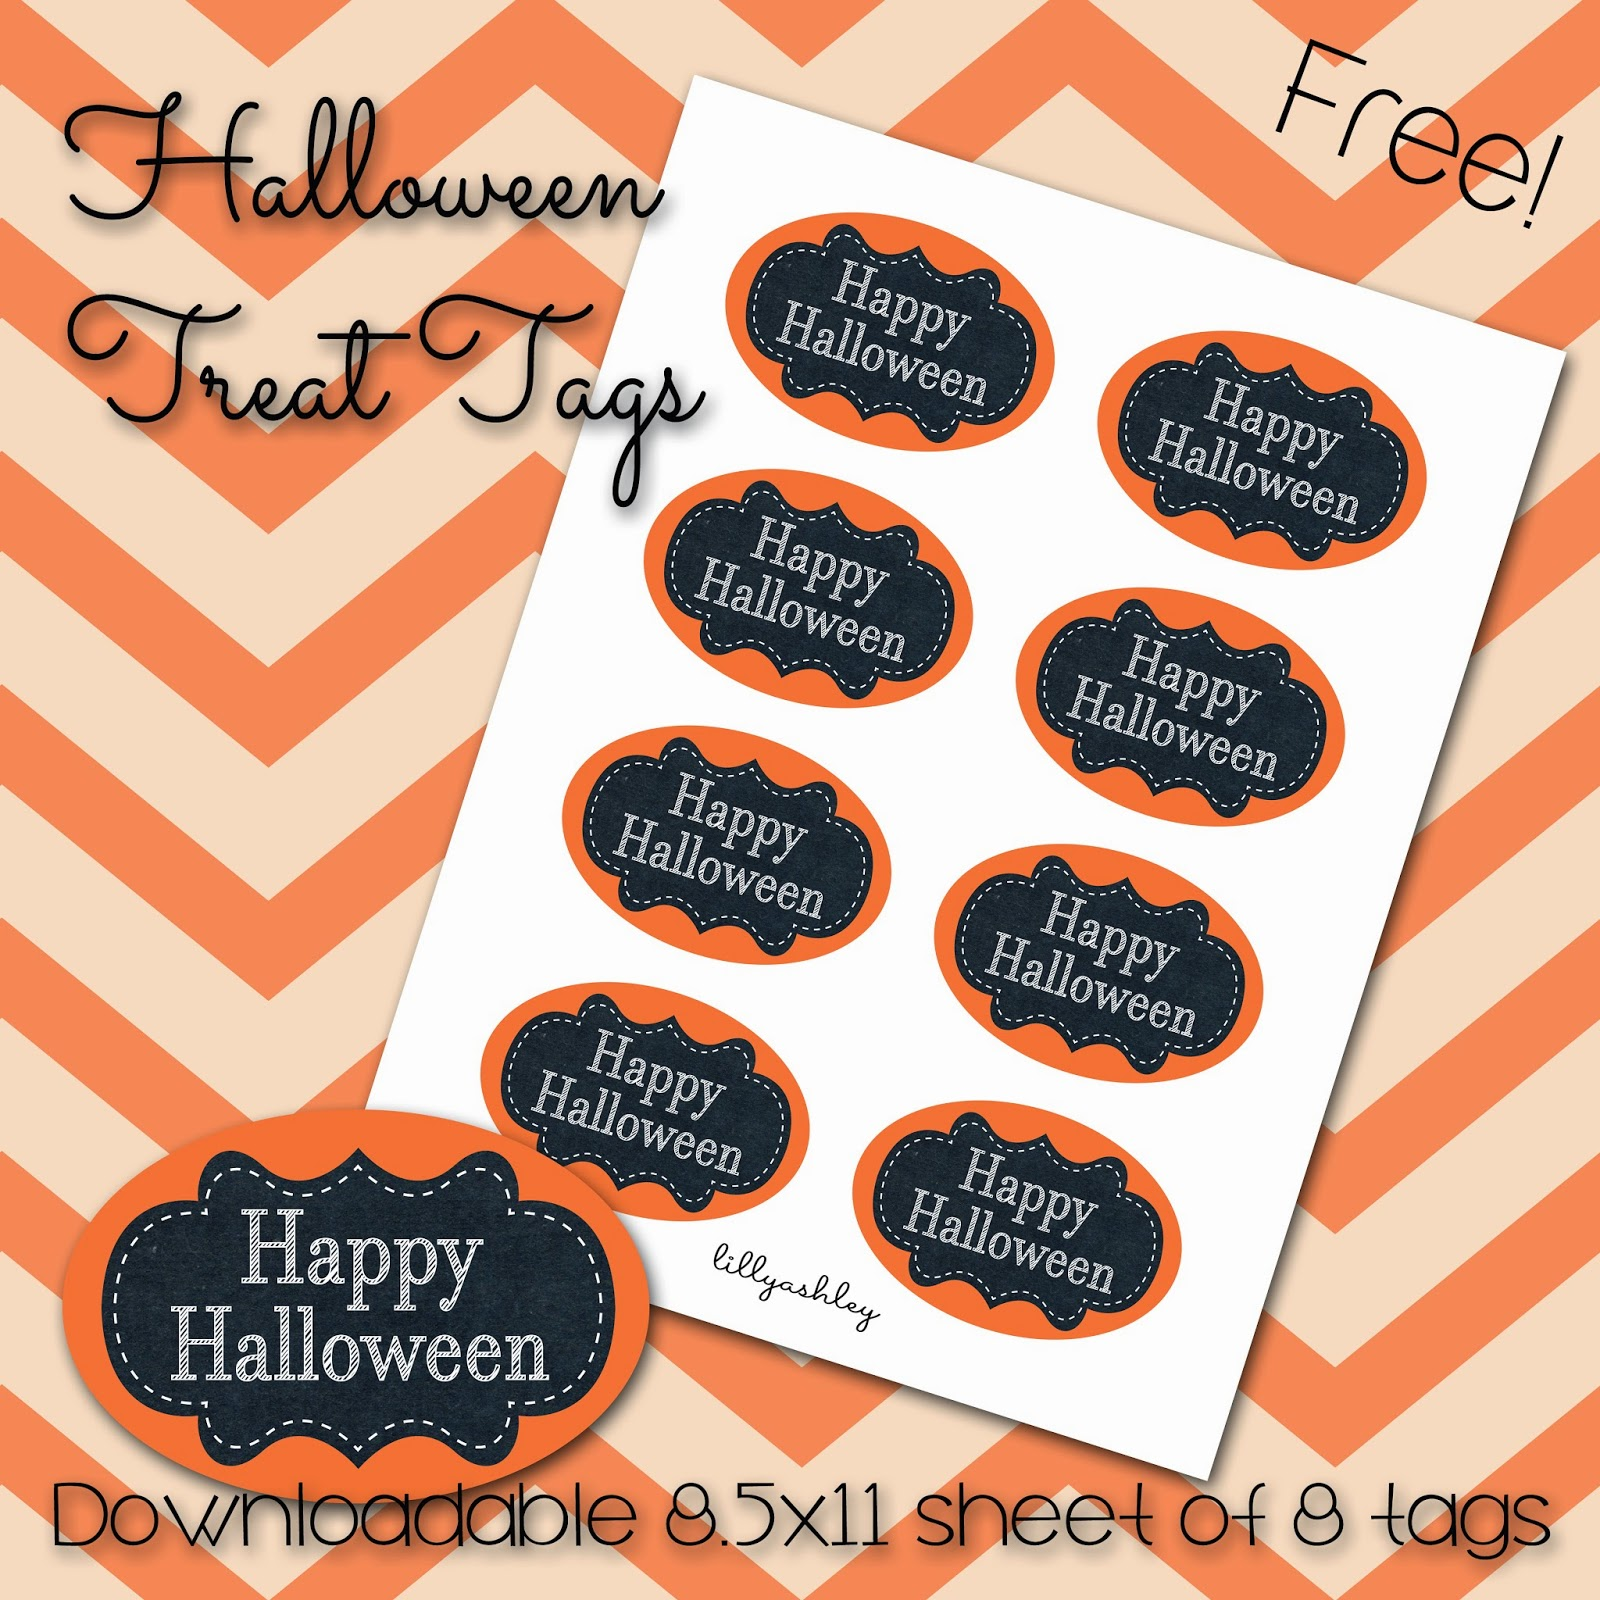 Printable Tags for Halloween Treat Bags